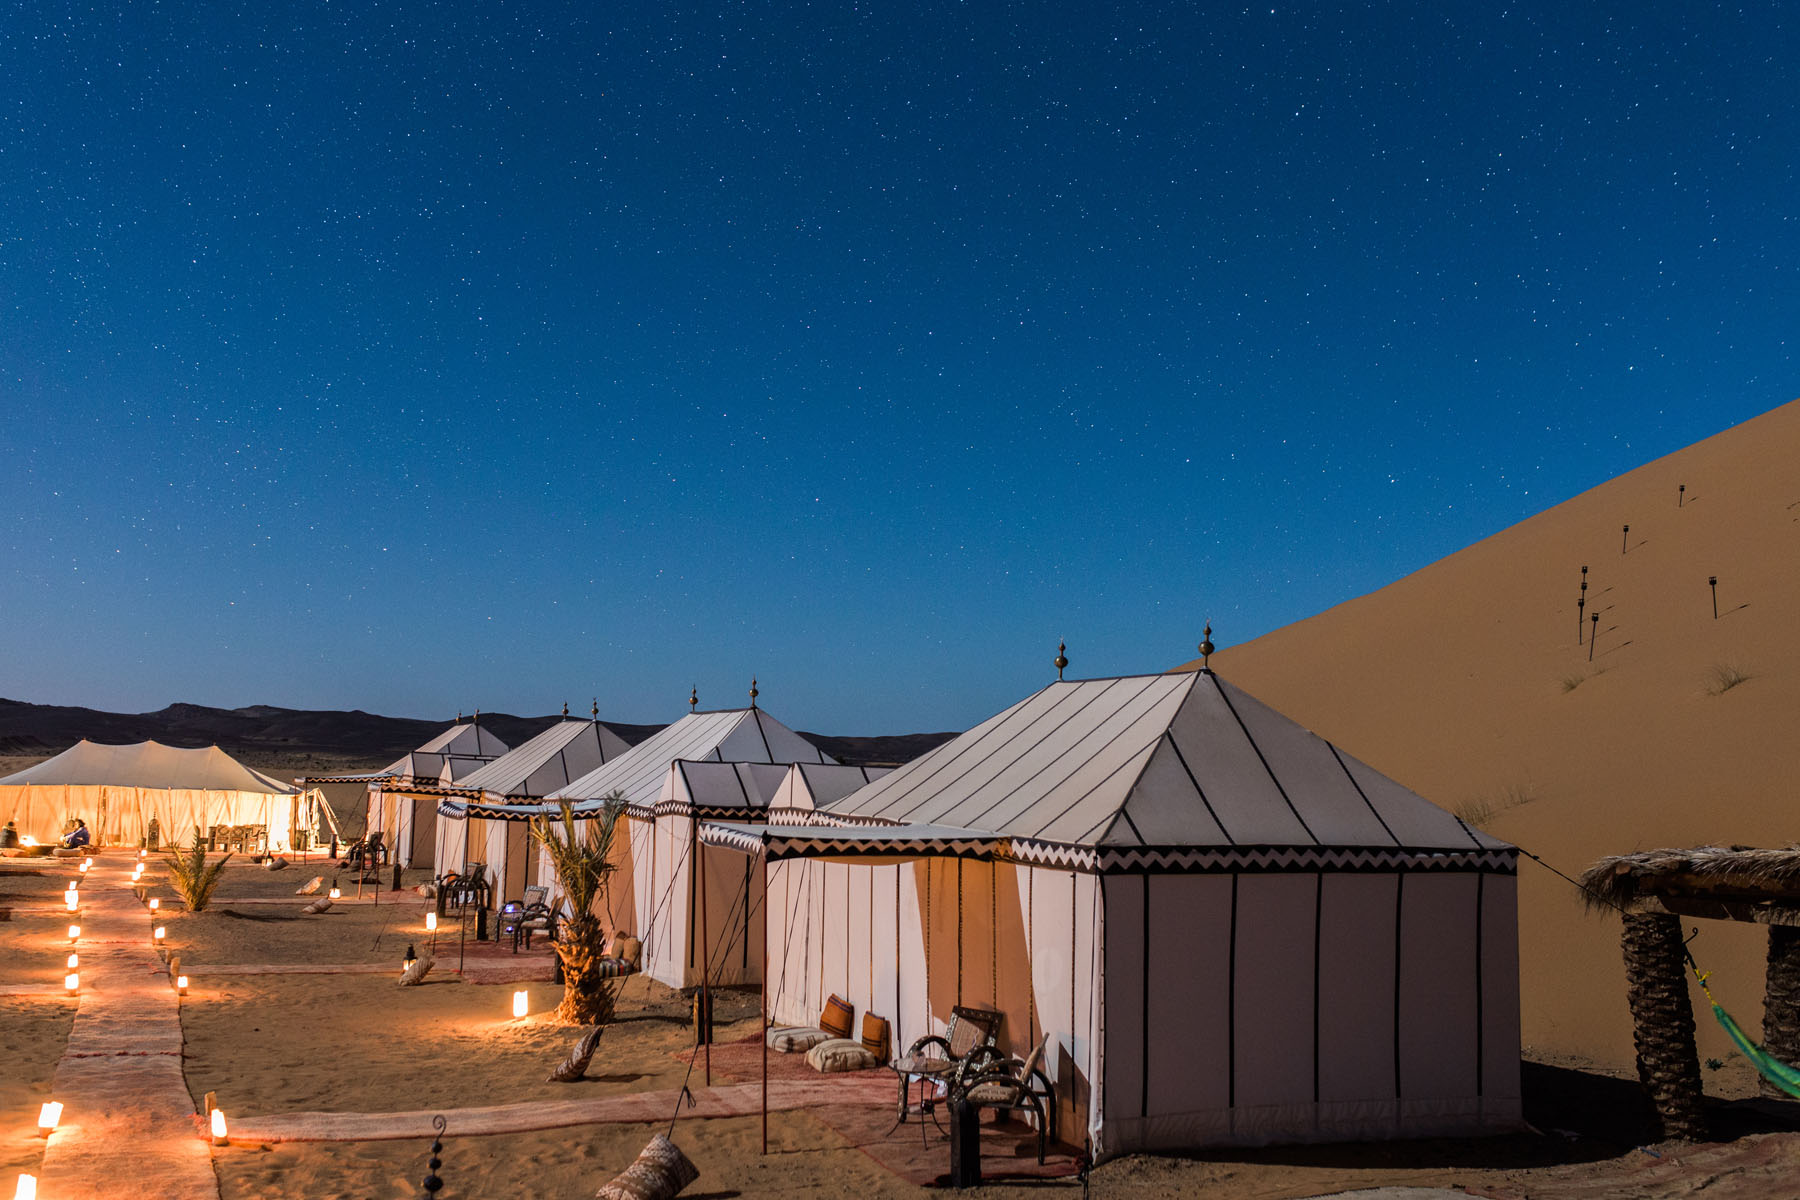 Merzouga Luxury Desert Camp, Morocco